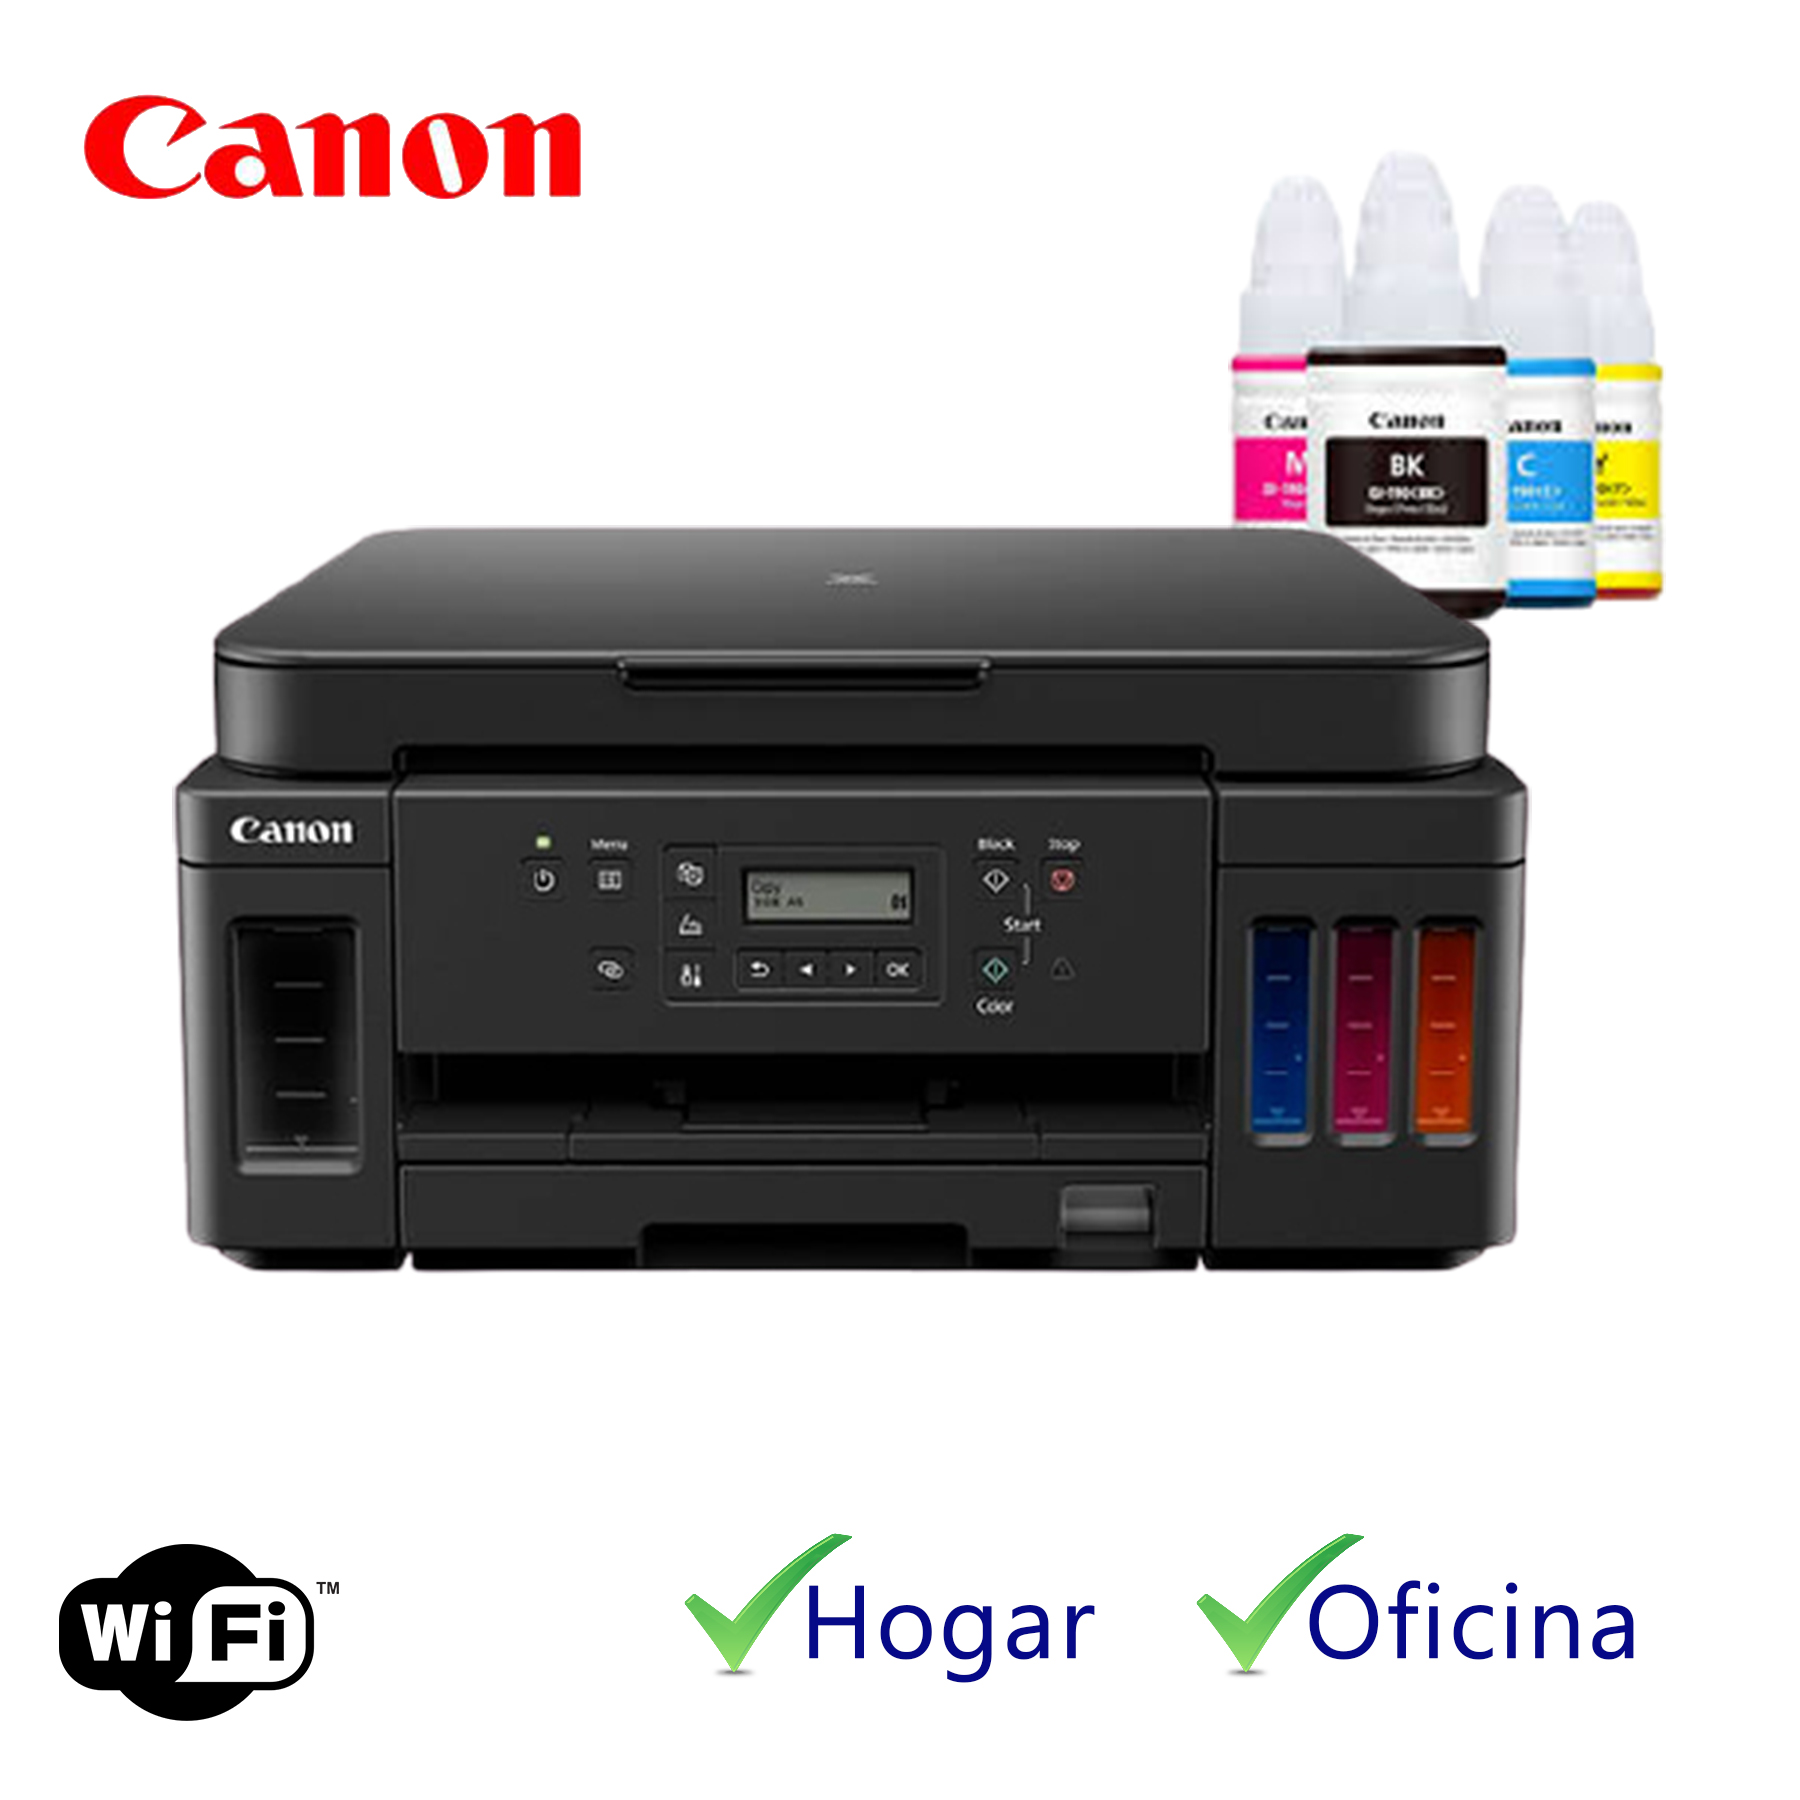 Printer Canon Pixma Inkjet Ip2810